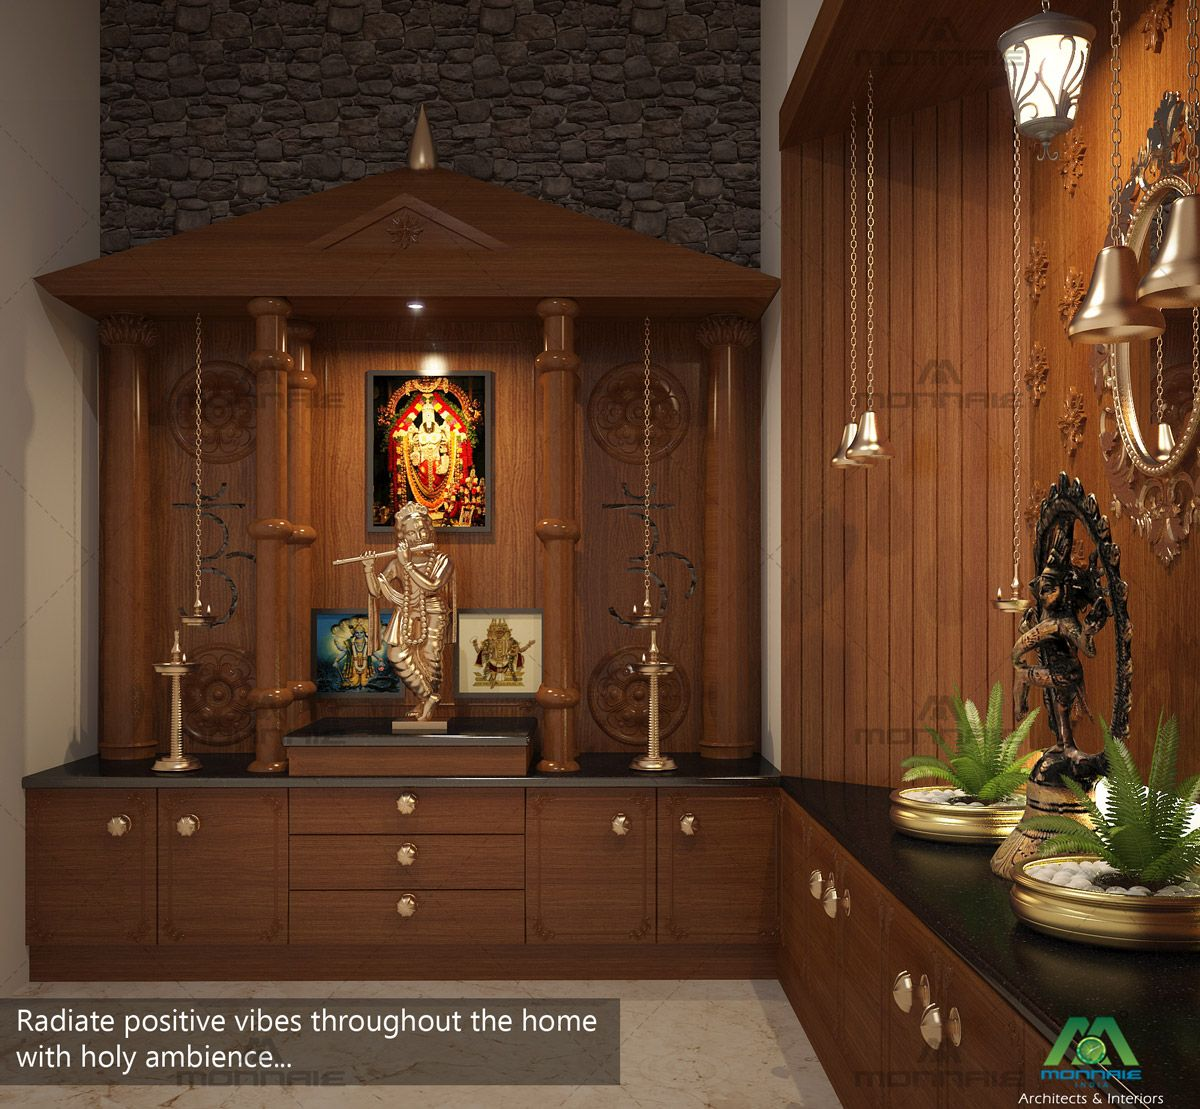 Radiate positive vibes throughout the home with holy ambience